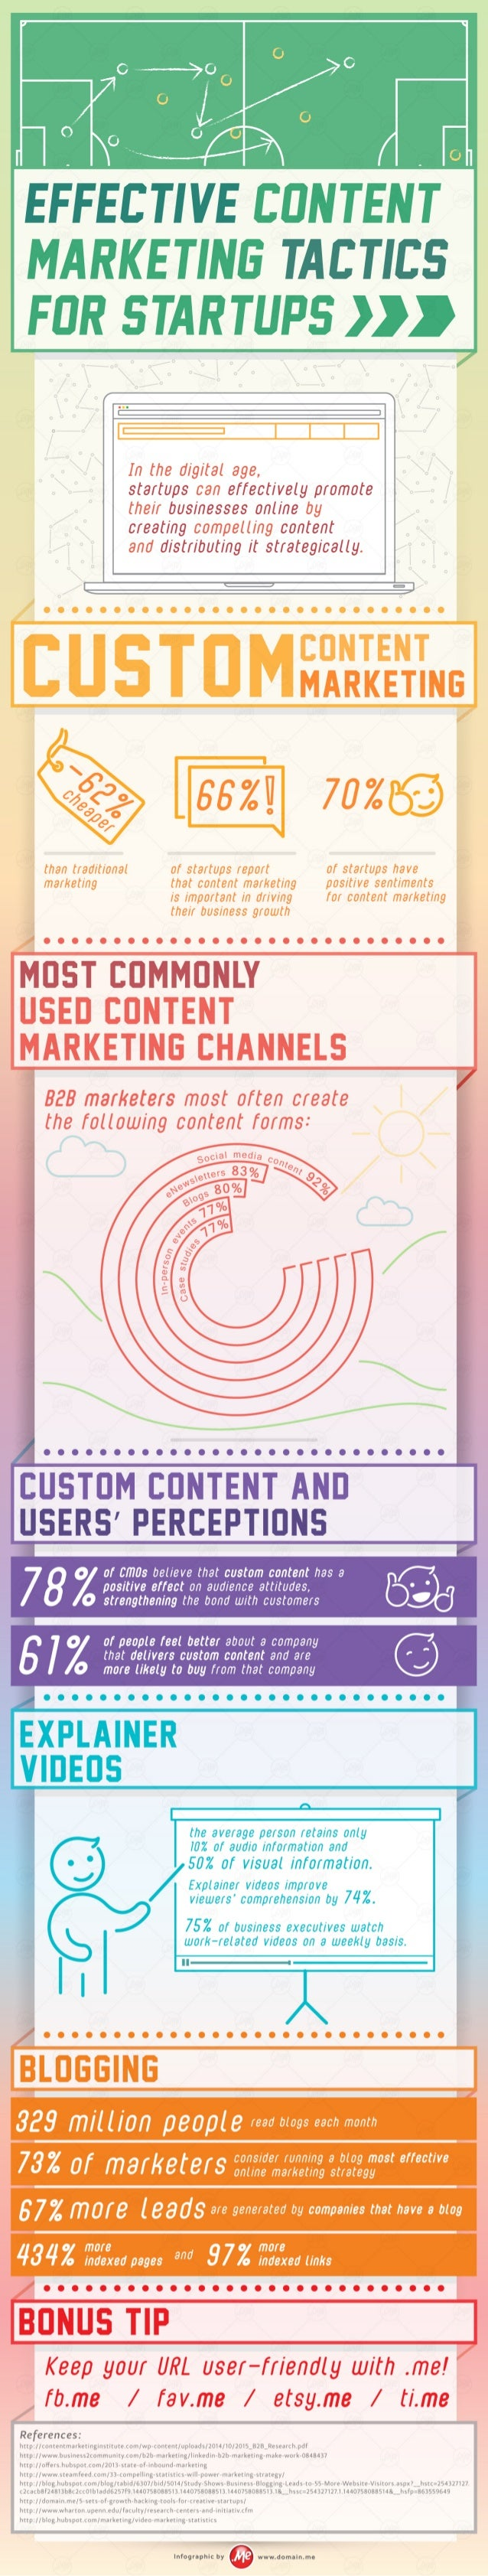 [INFOGRAPHIC] Effective Content Marketing Tactics for Startups